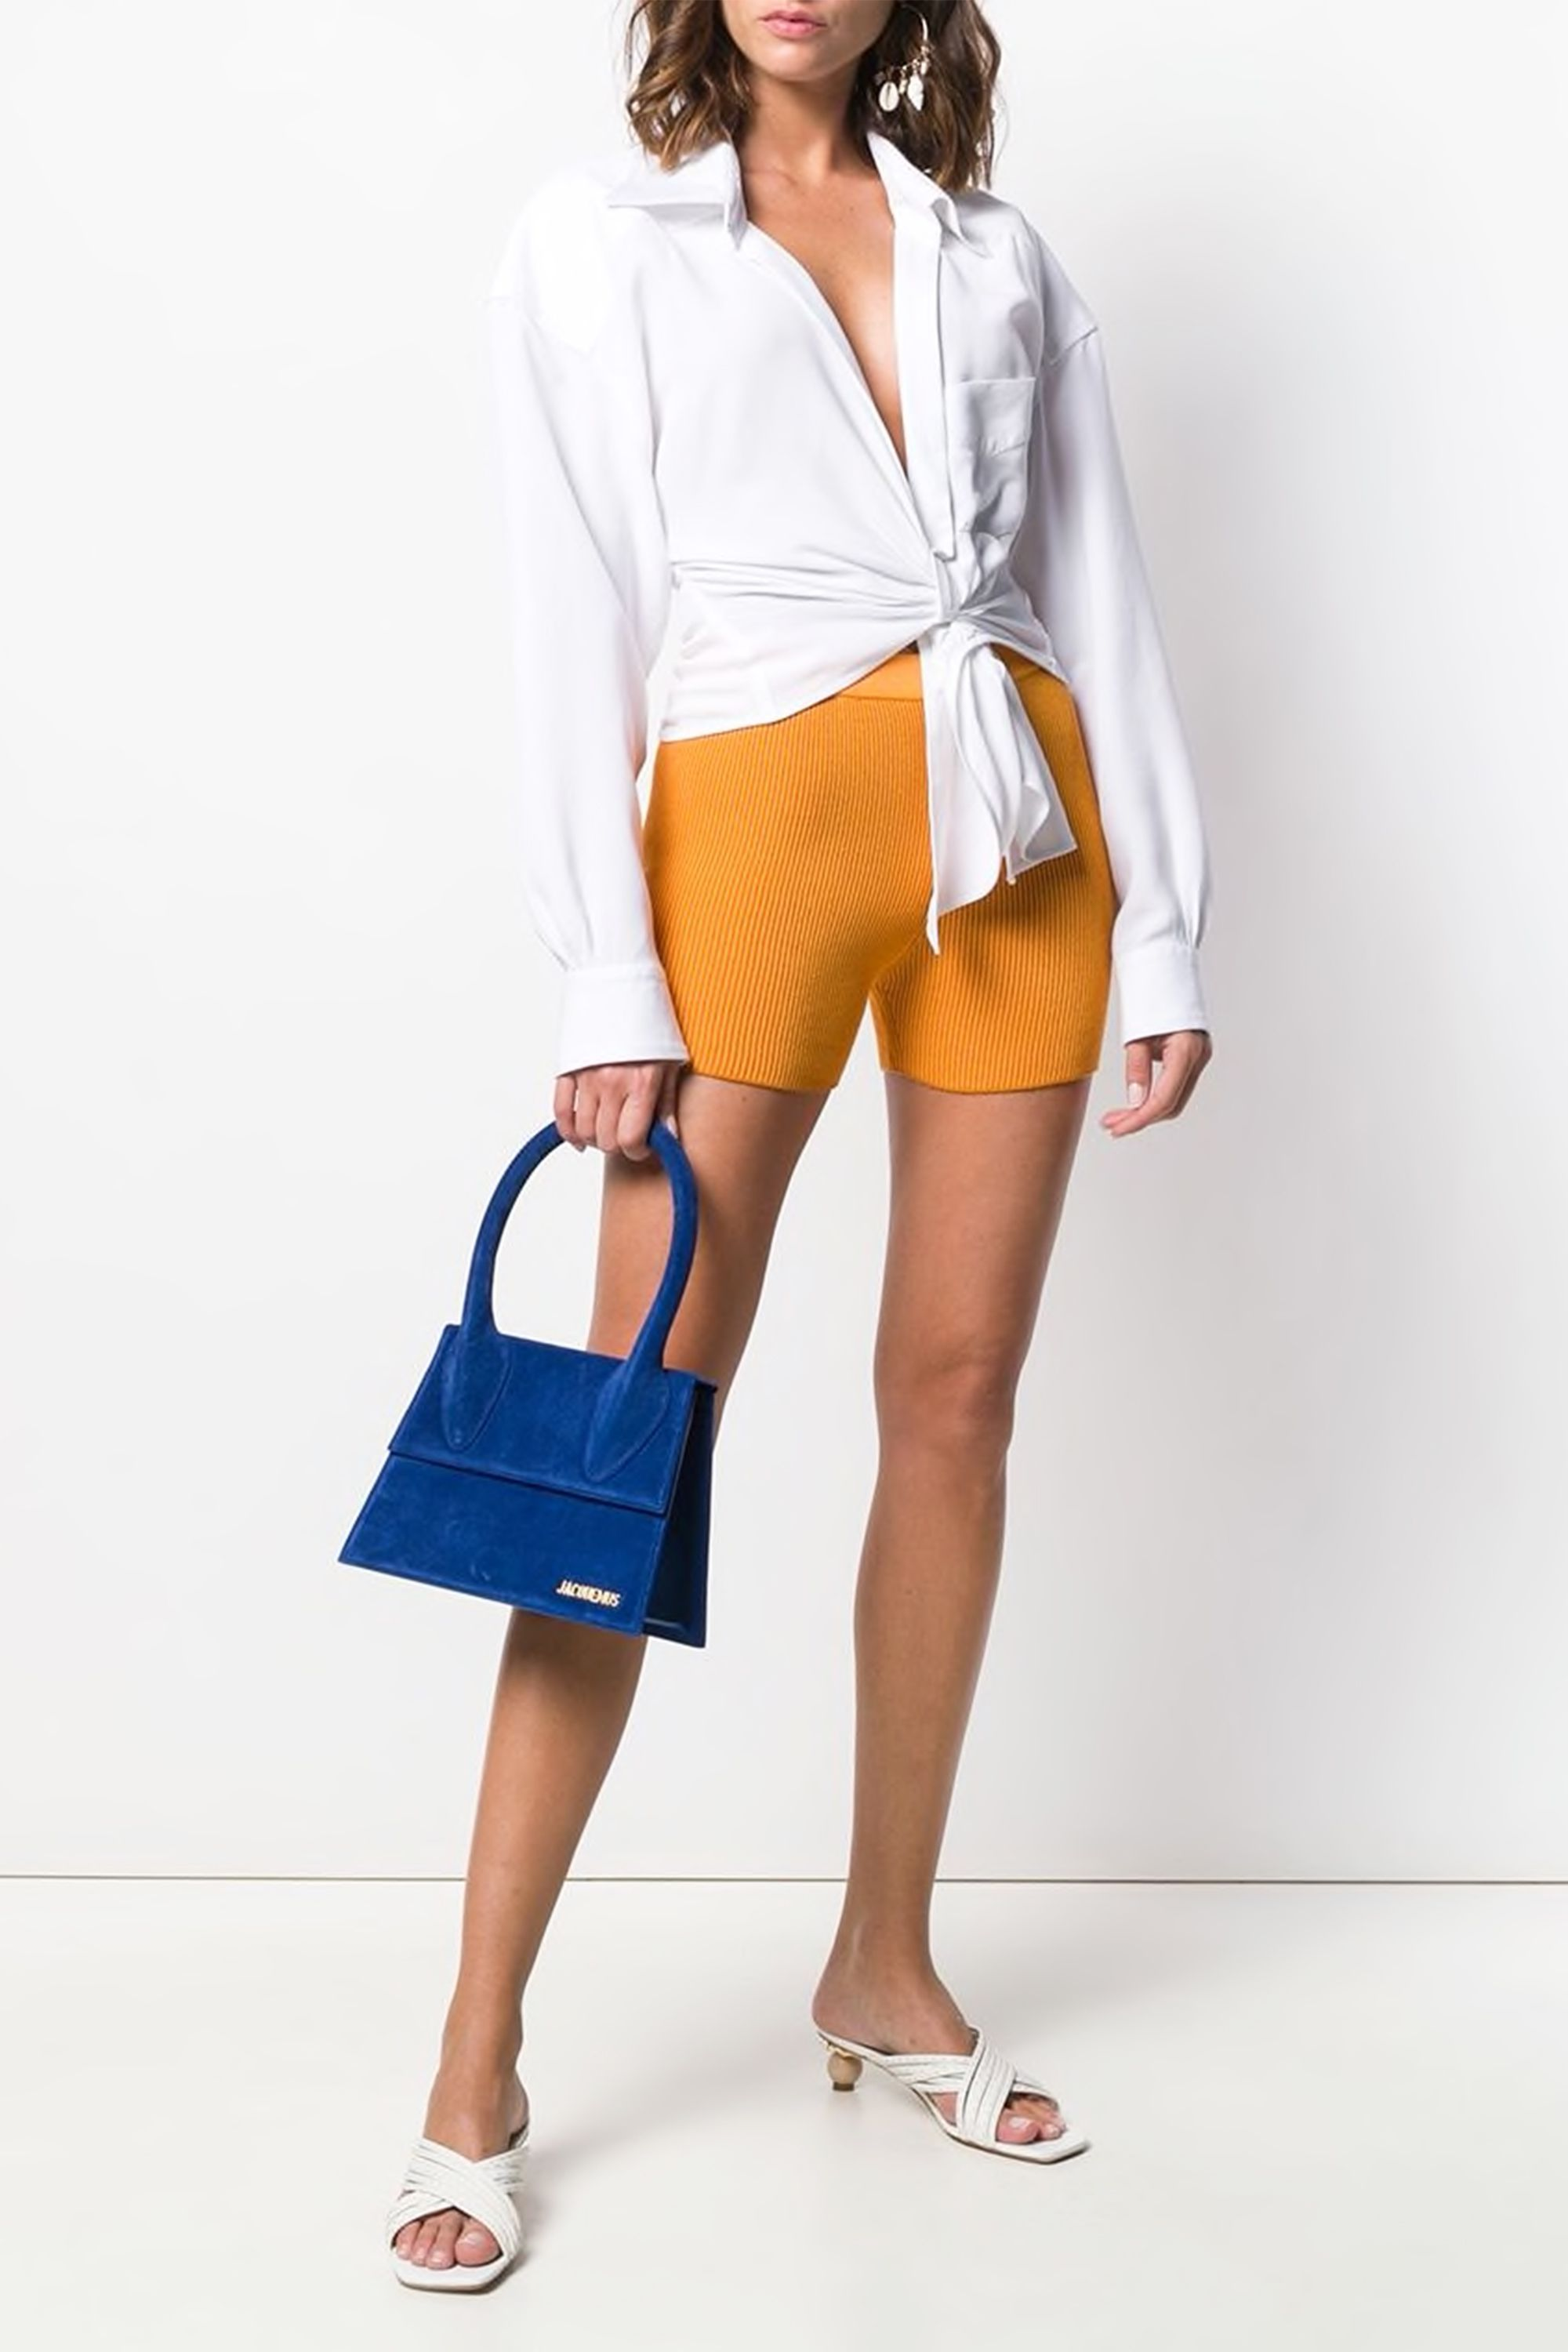 Striped Shorts Jacquemus farfetch.com $186.89 SHOP NOW Still undecided on biker shorts? Now's the time to test the waters— just add classics like a white button down and cute white heels.